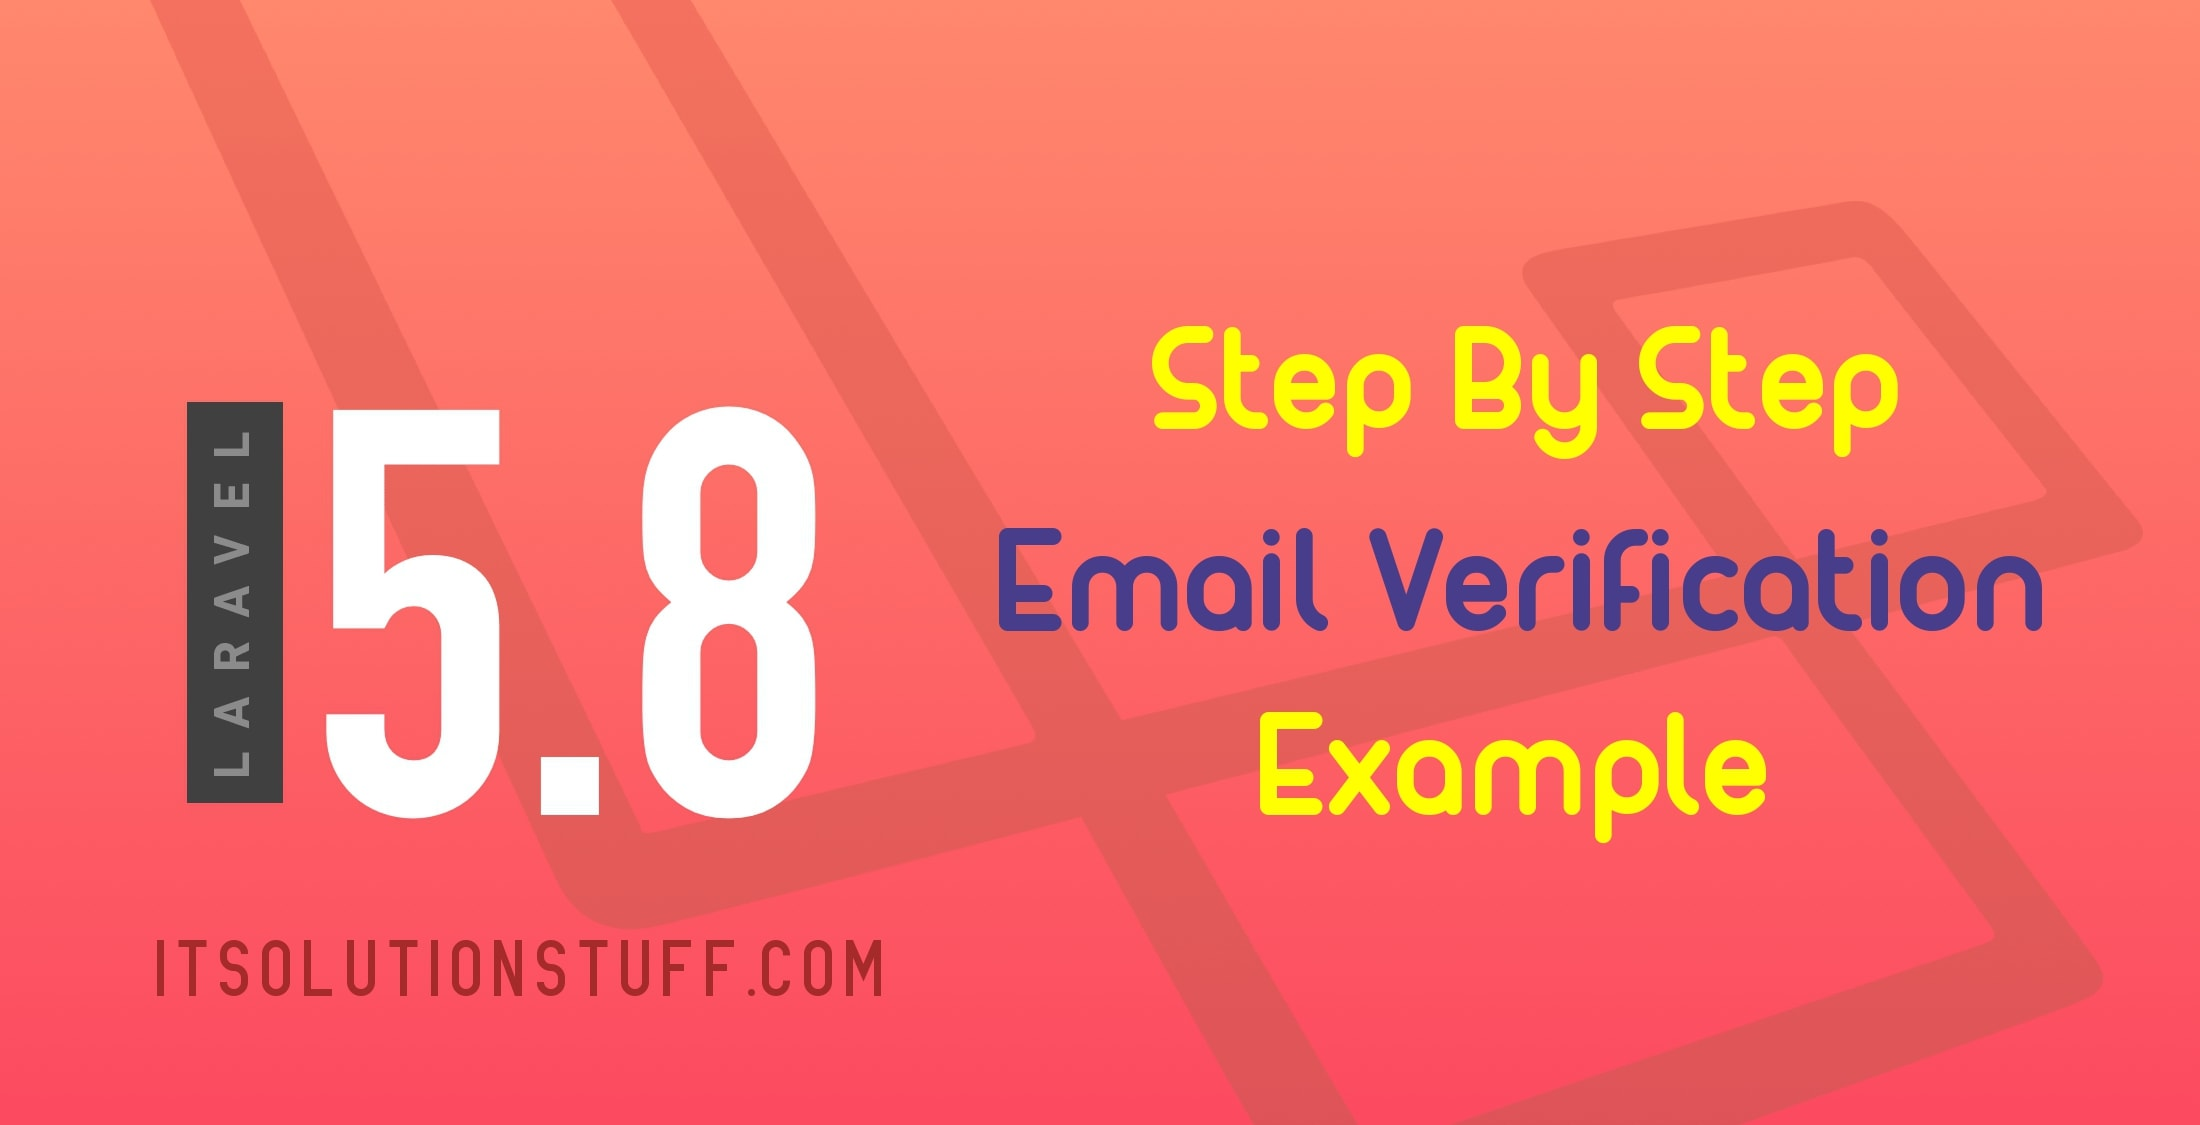 Laravel 5.8 Email Verification Example